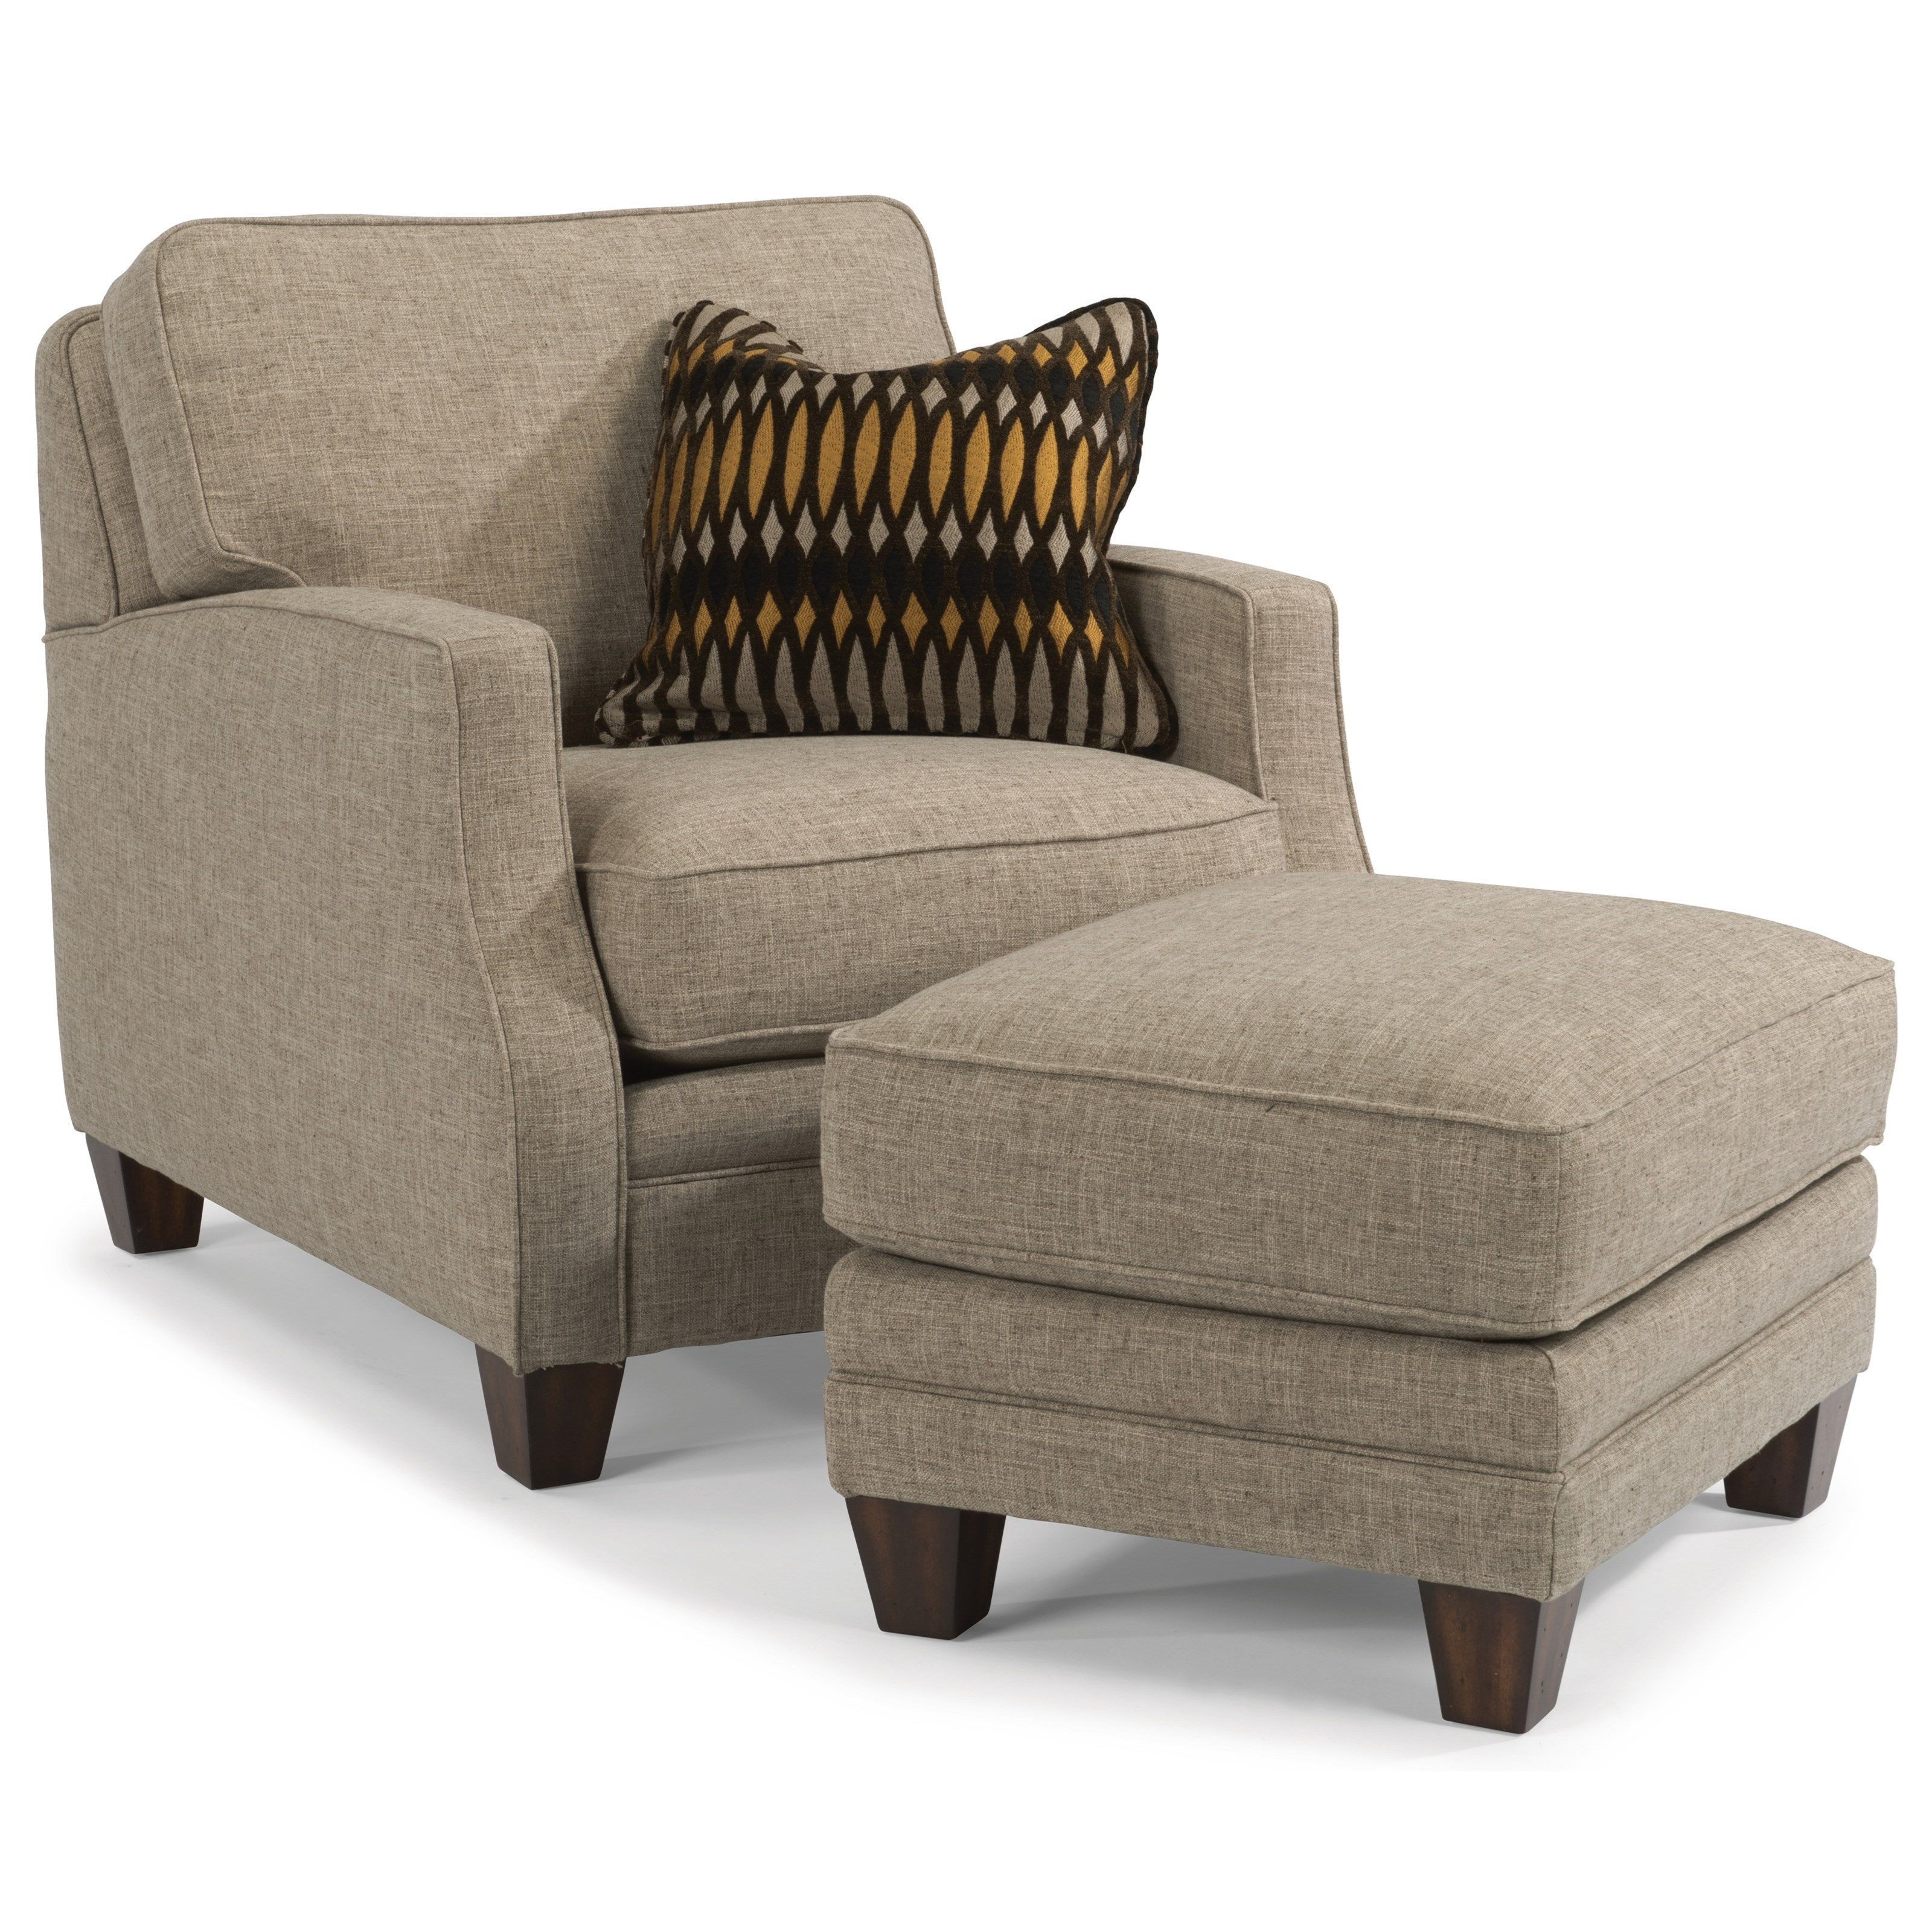 Chair And Ottoman Set Lenox Transitional Chair With Scalloped Arms And Ottoman Set By Flexsteel At Rooms For Less